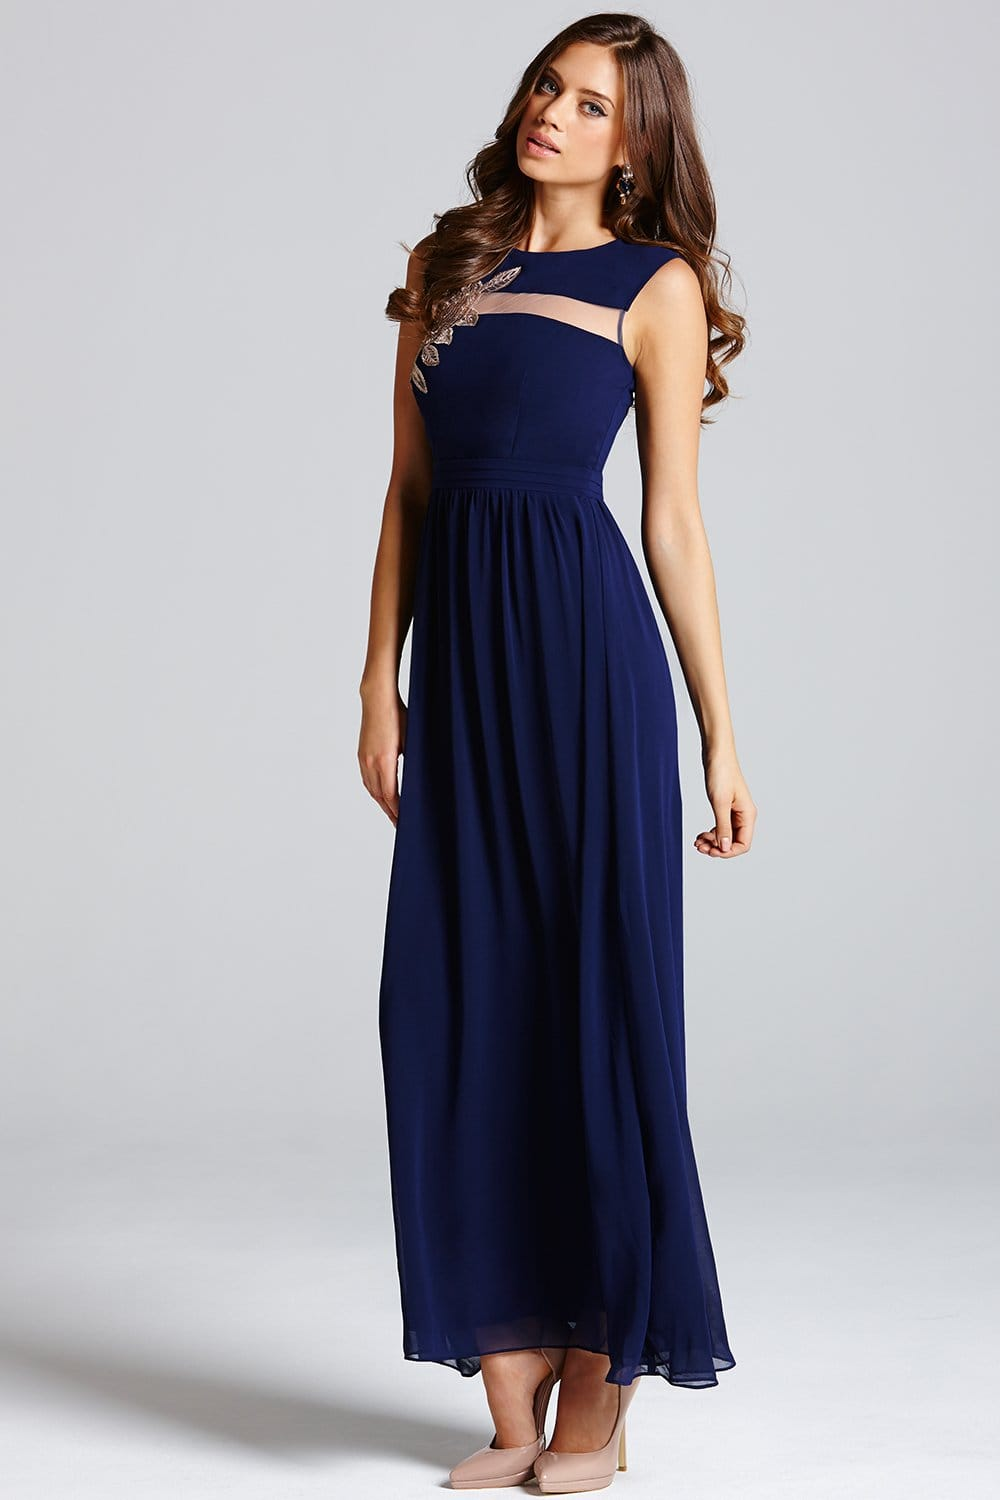 Silk Chiffon Maxi Dresses Silk Chiffon Maxi Dress Black Chiffon Maxi Dress Red Chiffon Maxi Dress Sleeveless Chiffon Maxi Dress Strapless Chiffon Maxi Dress White Chiffon Maxi Dress Chiffon Maxi Dress Chiffon Floral Maxi Dress. Stay in the Know! Be the first to know about new arrivals, look books, sales & promos!